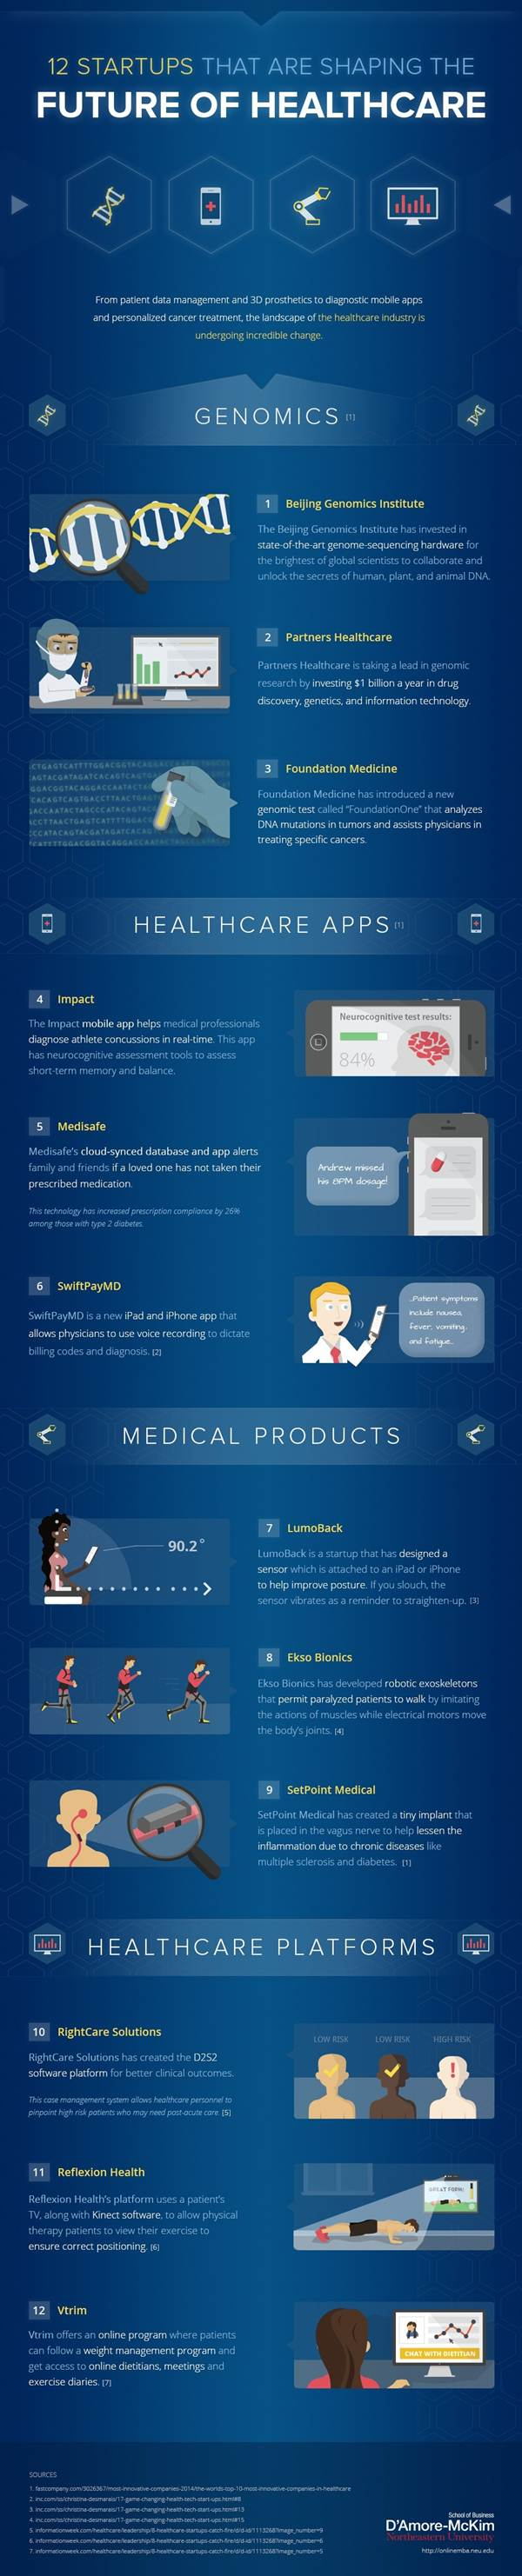 Health Infographic : 12 Companies Shaping the Future of Digital Health